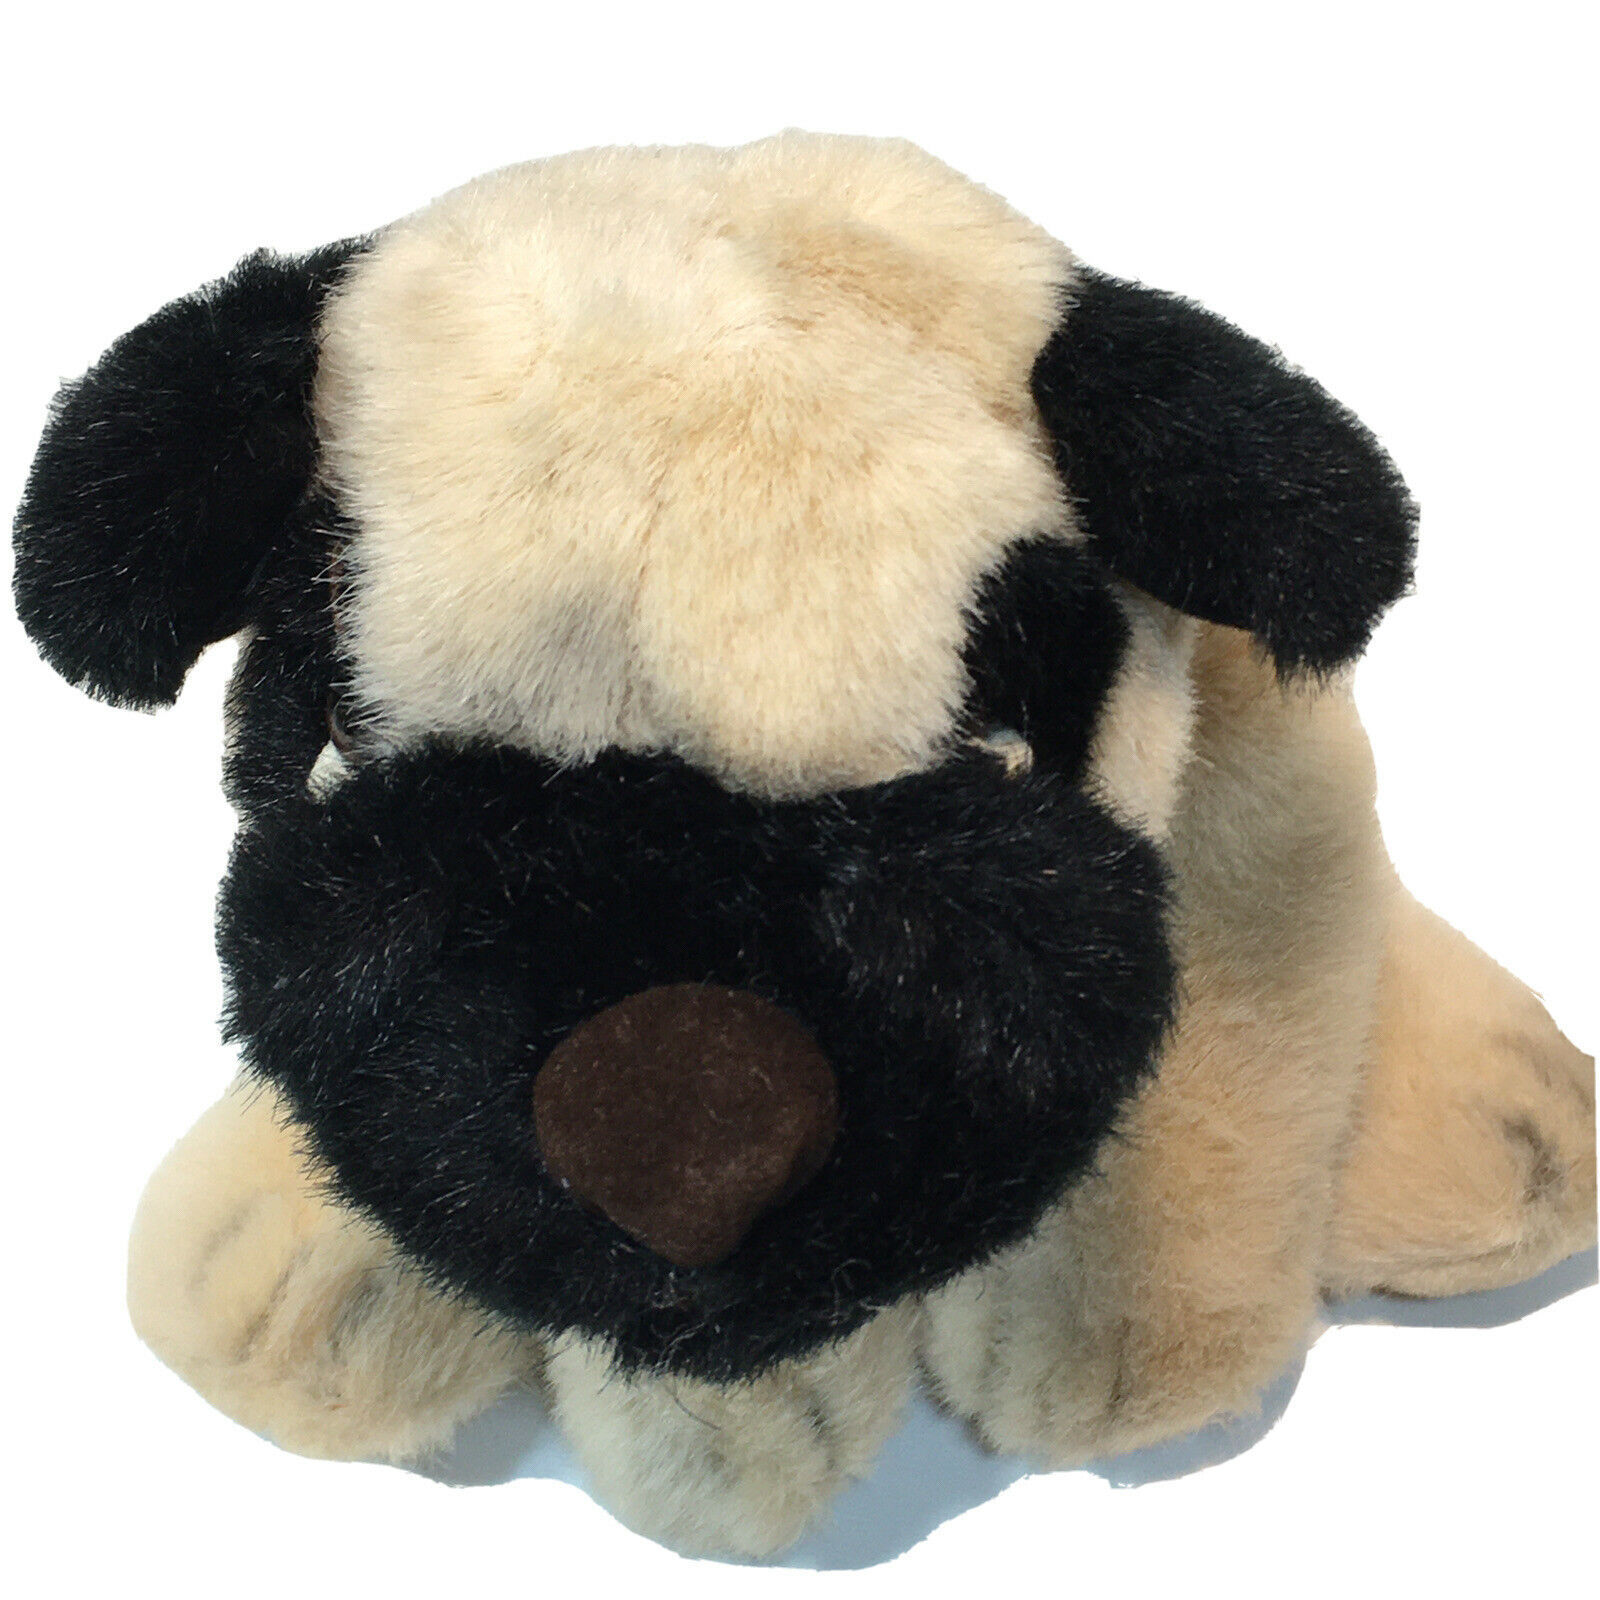 Primary image for Russ Berrie PONCHO Pug Dog Plush Bulldog Retired Beige Stuffed Animal 3485 - 10""